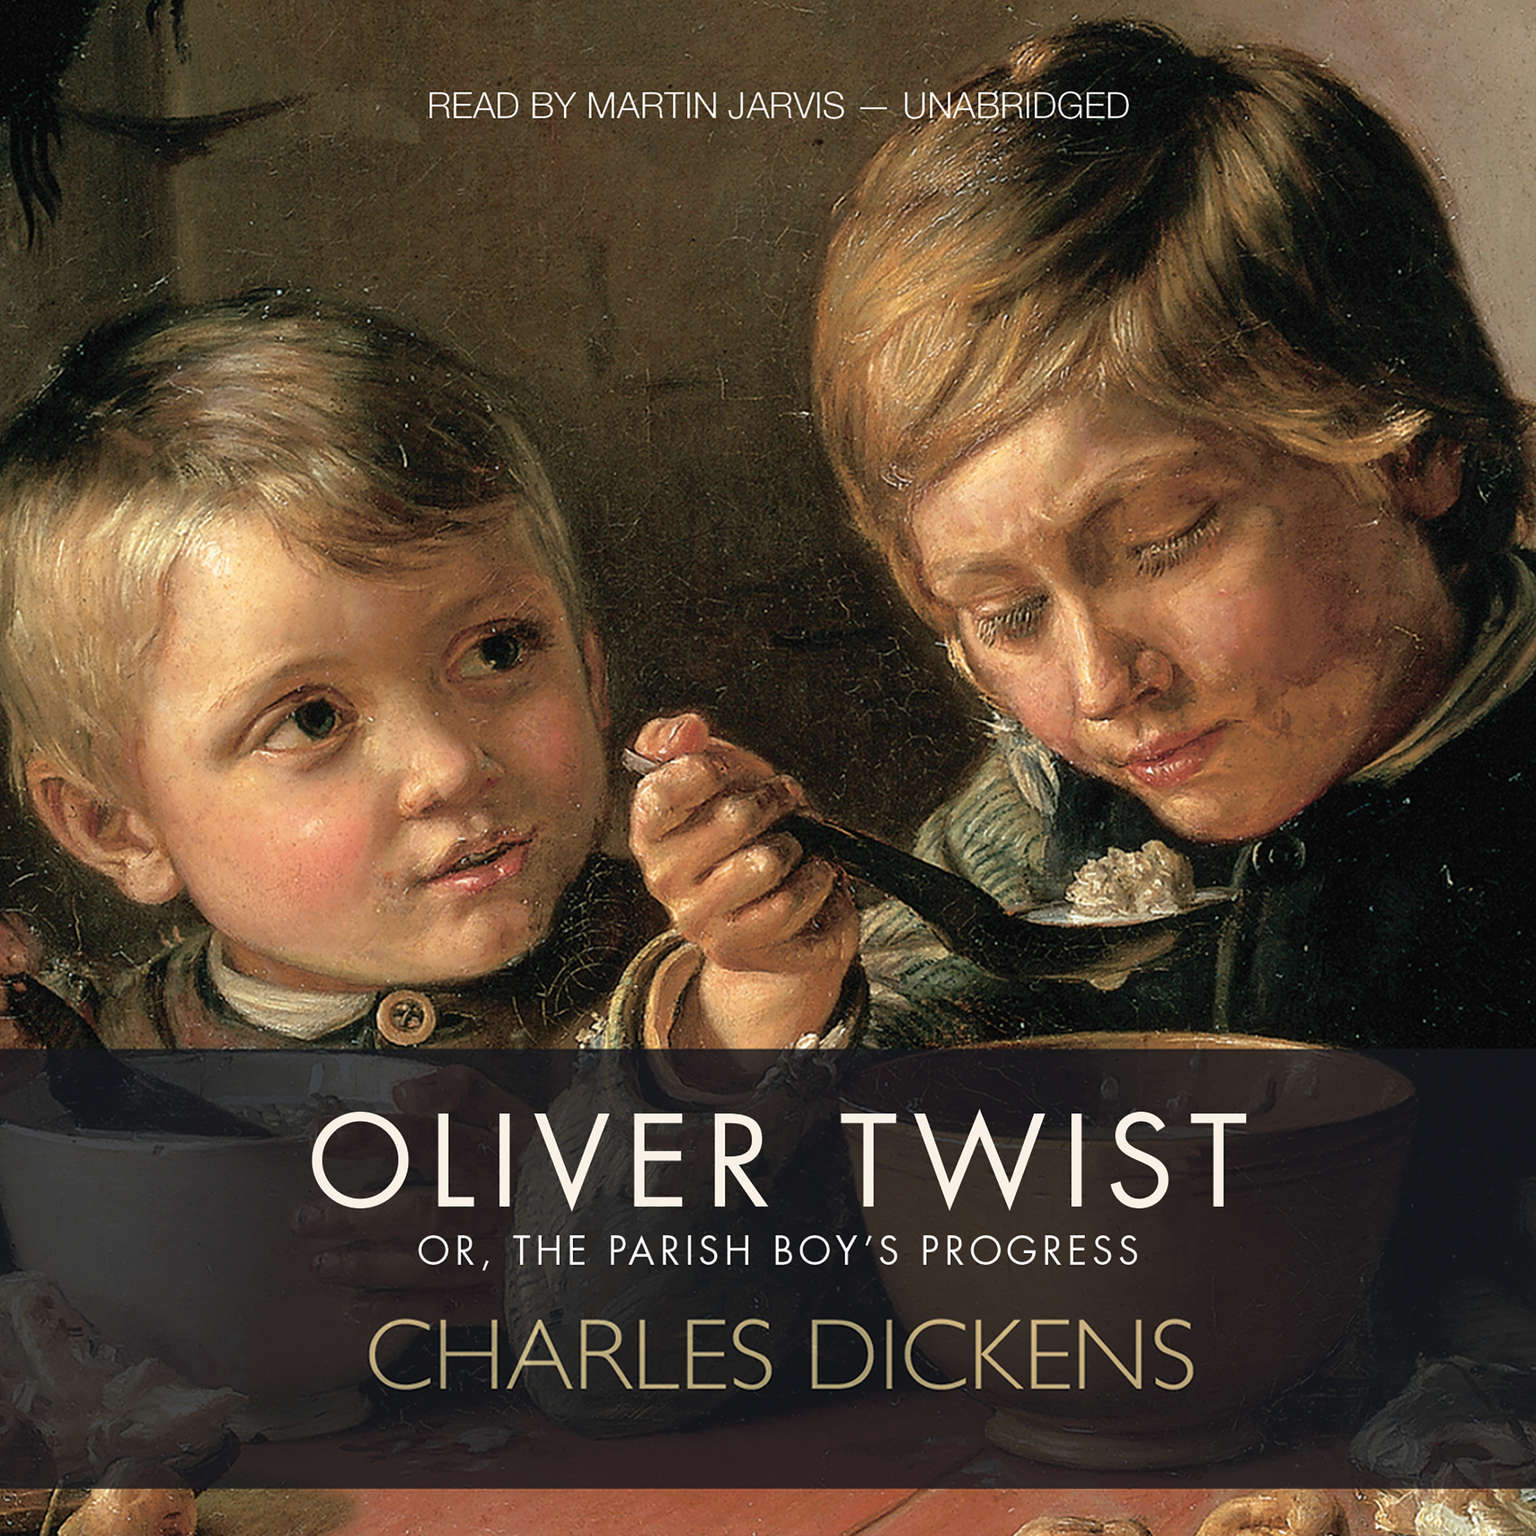 hear oliver twist audiobook by charles dickens by martin extended audio sample oliver twist or the parish boy s progress by charles dickens